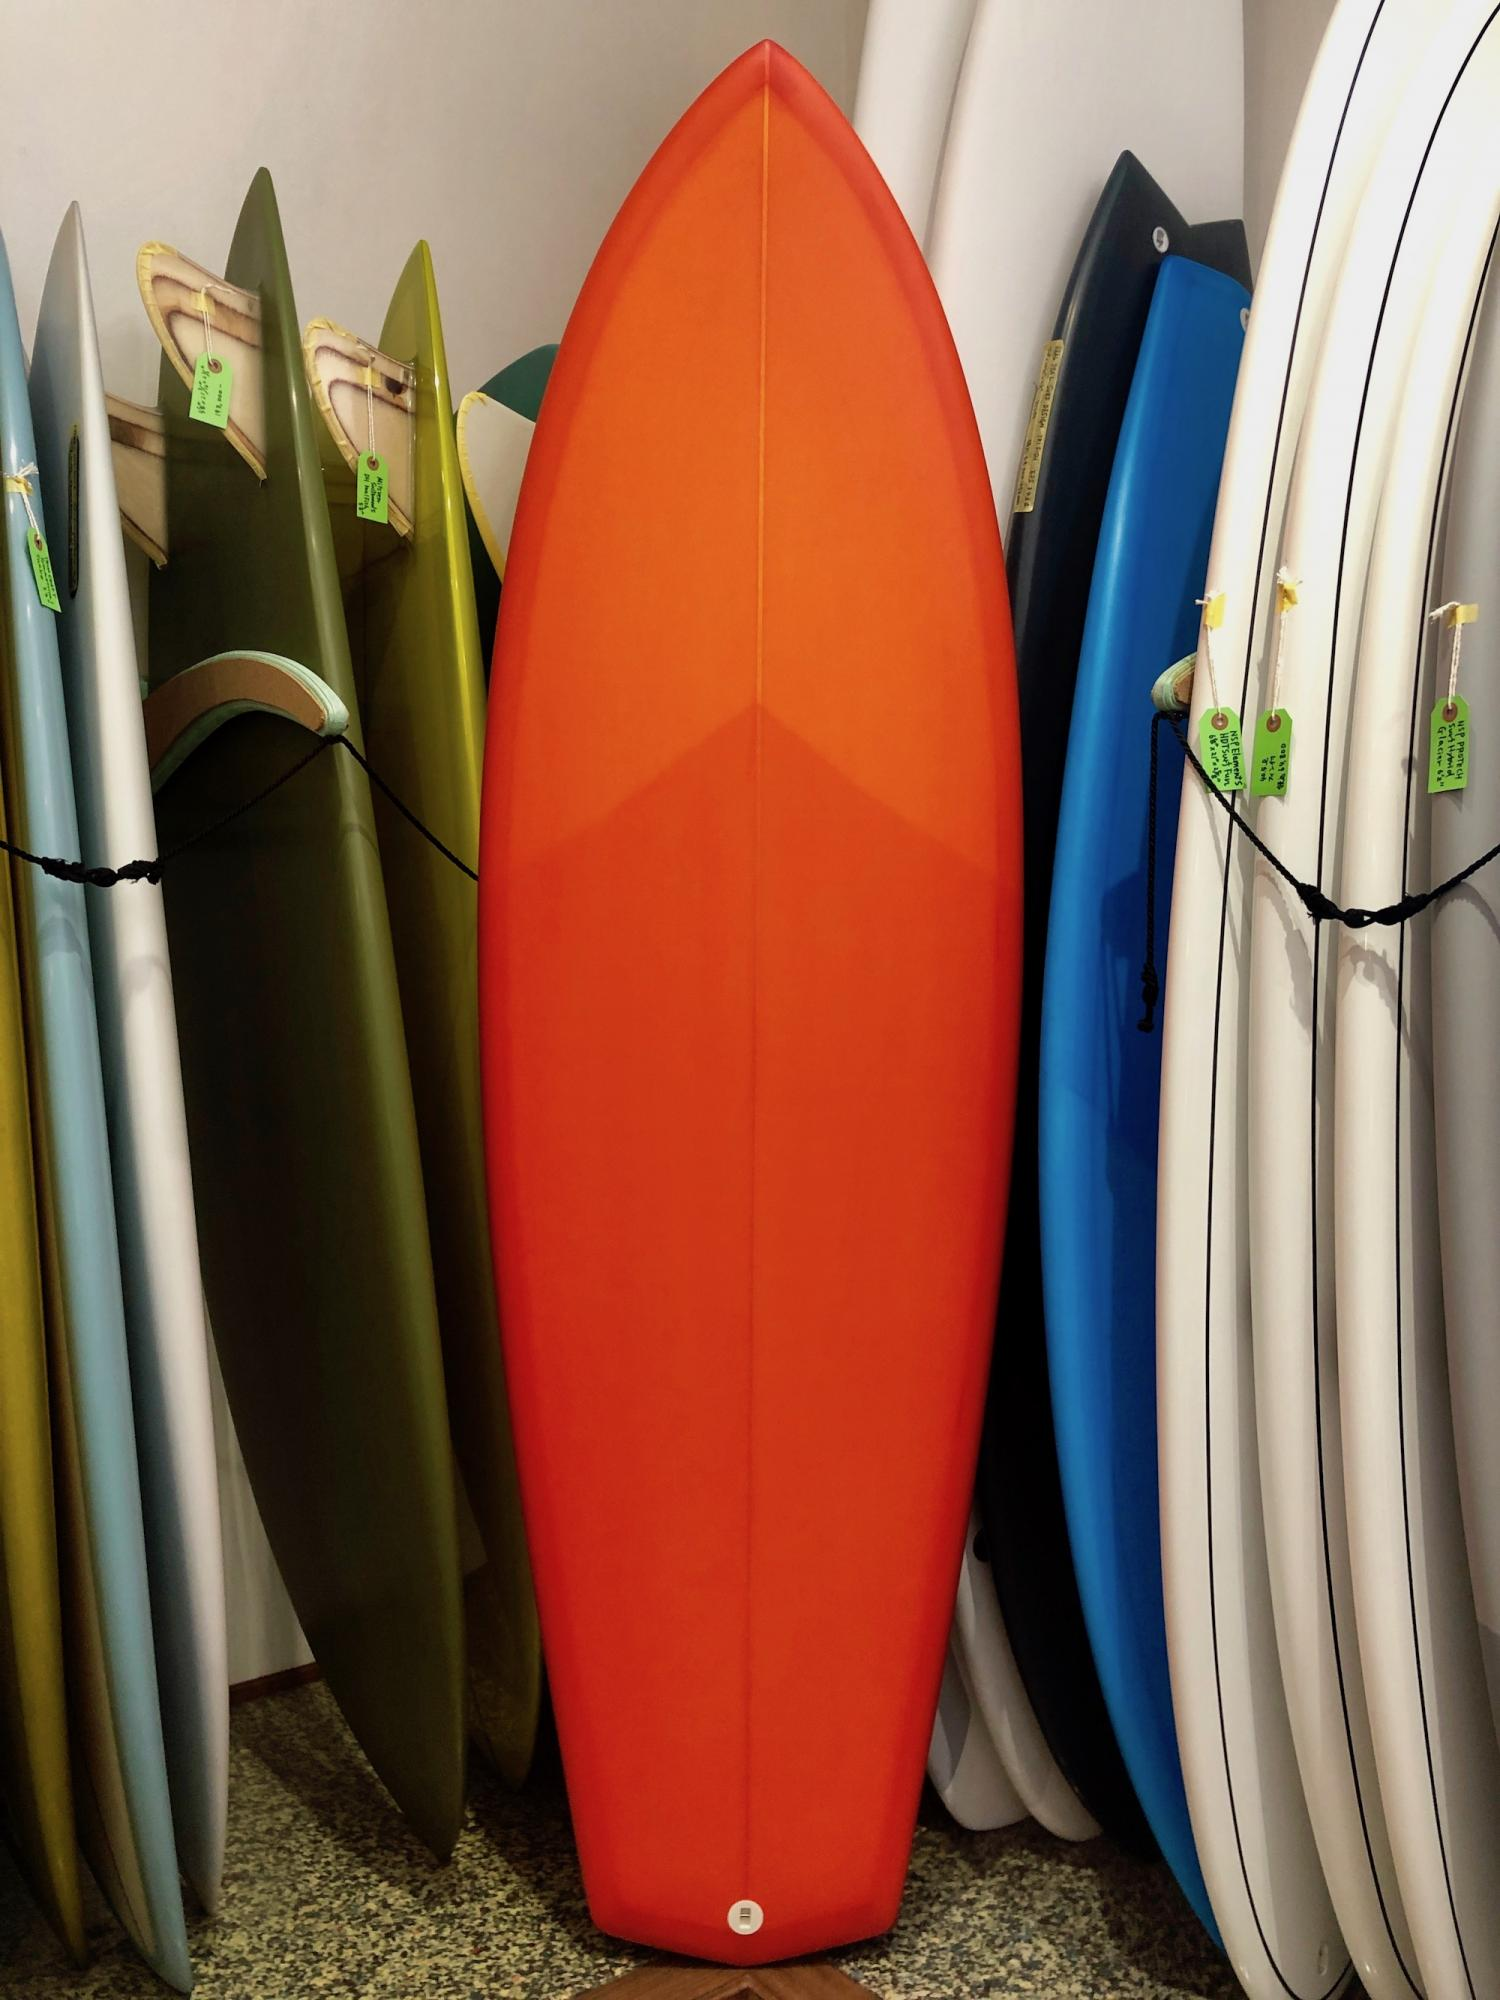 RMD SURFBOARDS 5.10 Fire ball